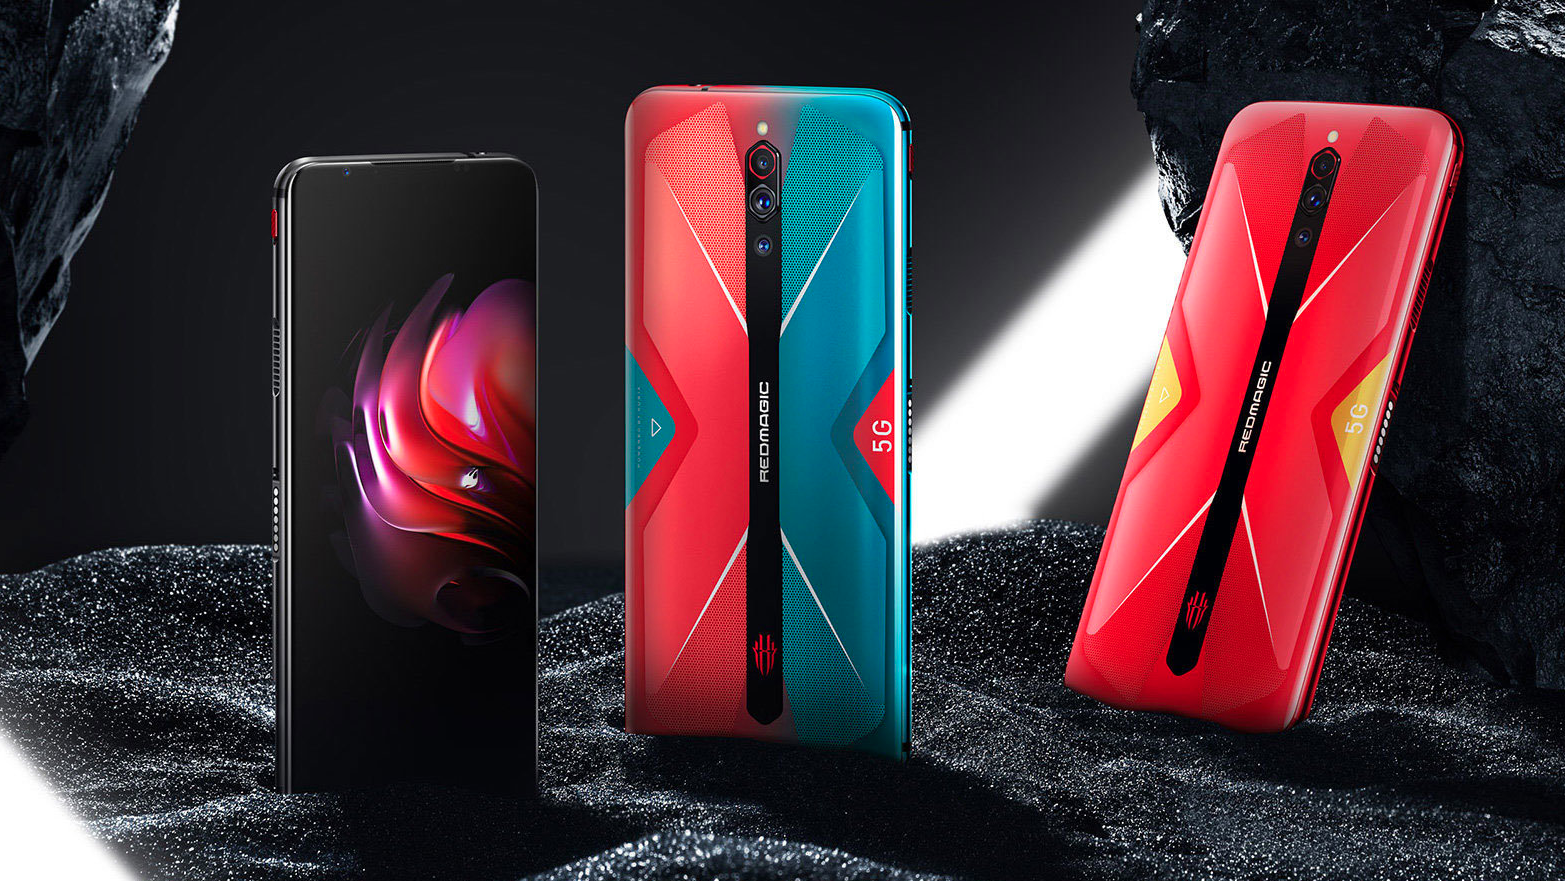 Red Magic 5G is the world's first gaming smartphone with a 144Hz display